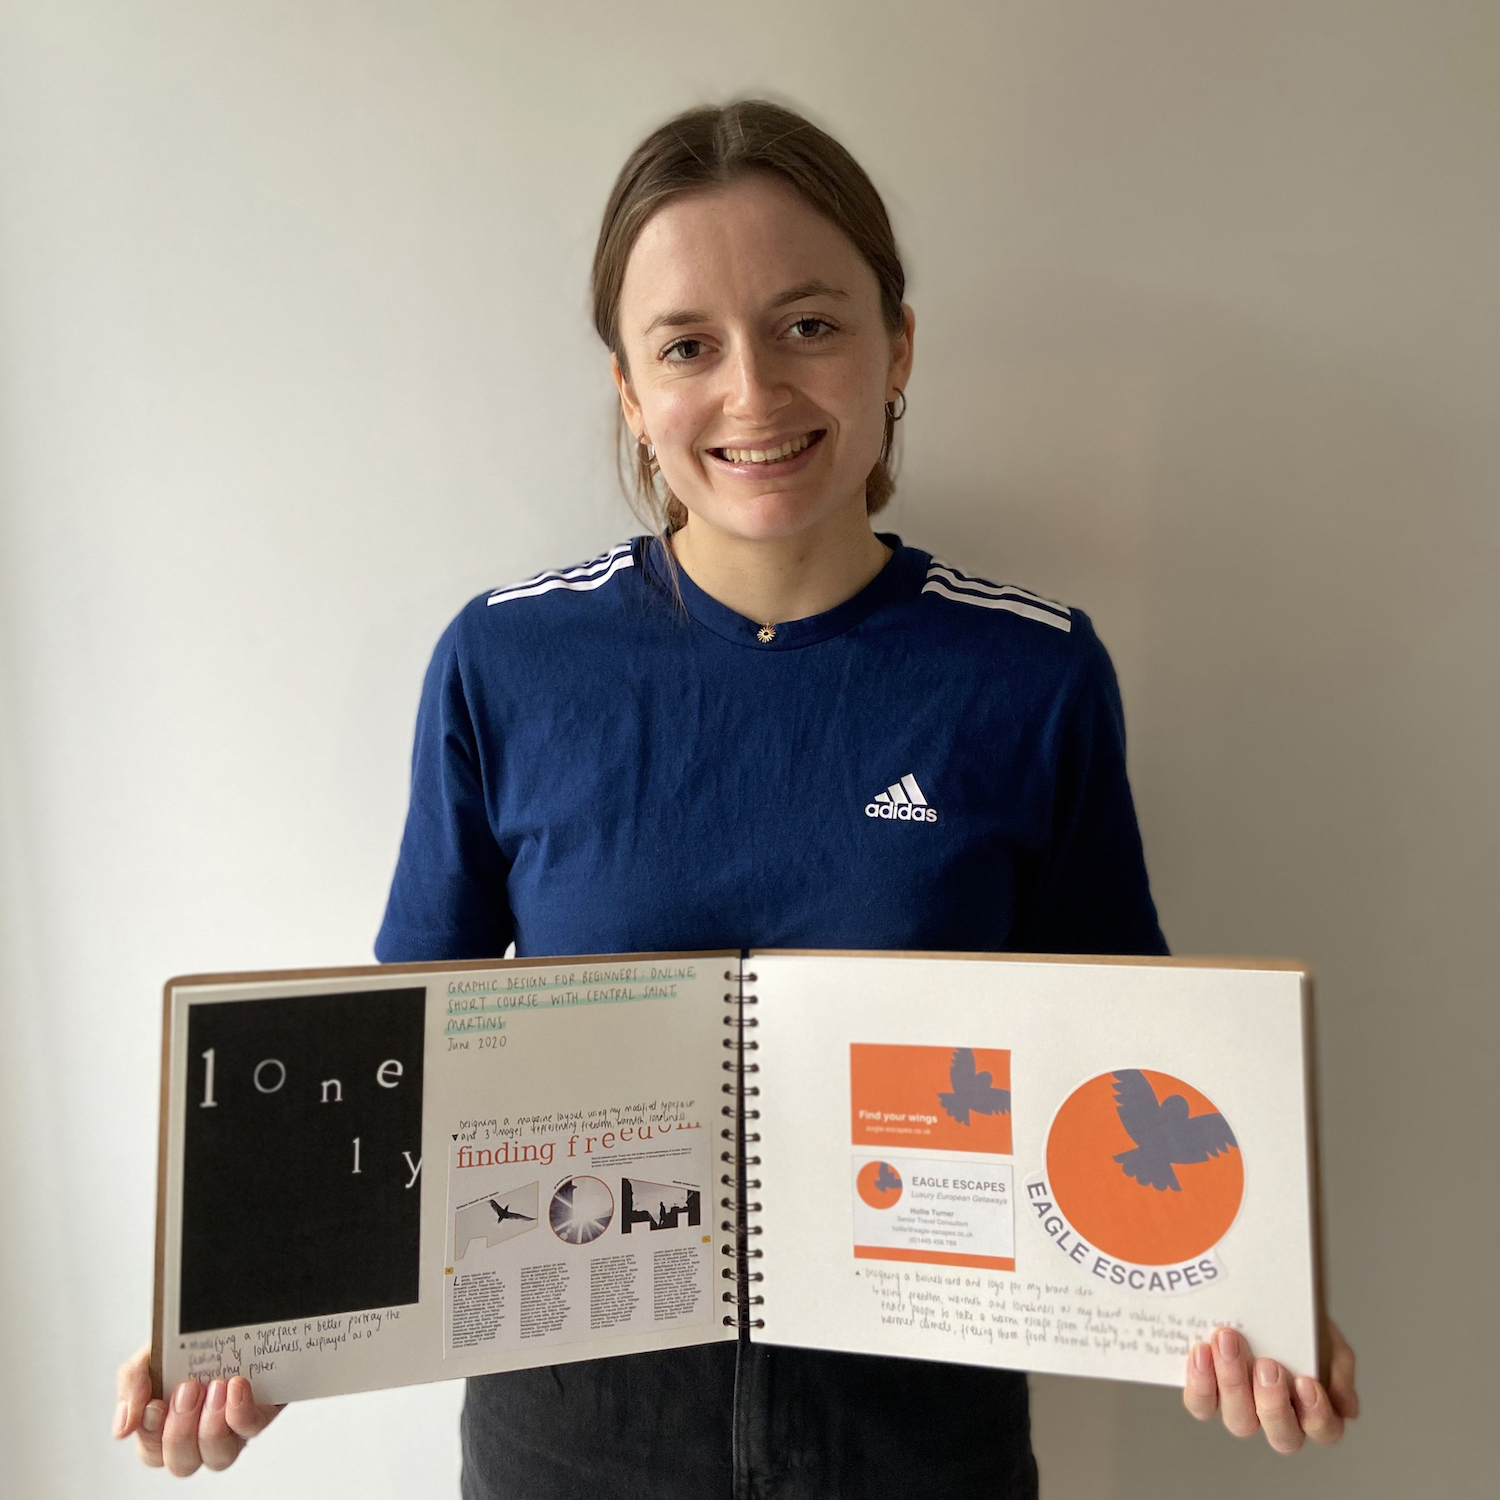 A photo of Sophie Turner holding her sketch book opened out and smiling to the camera